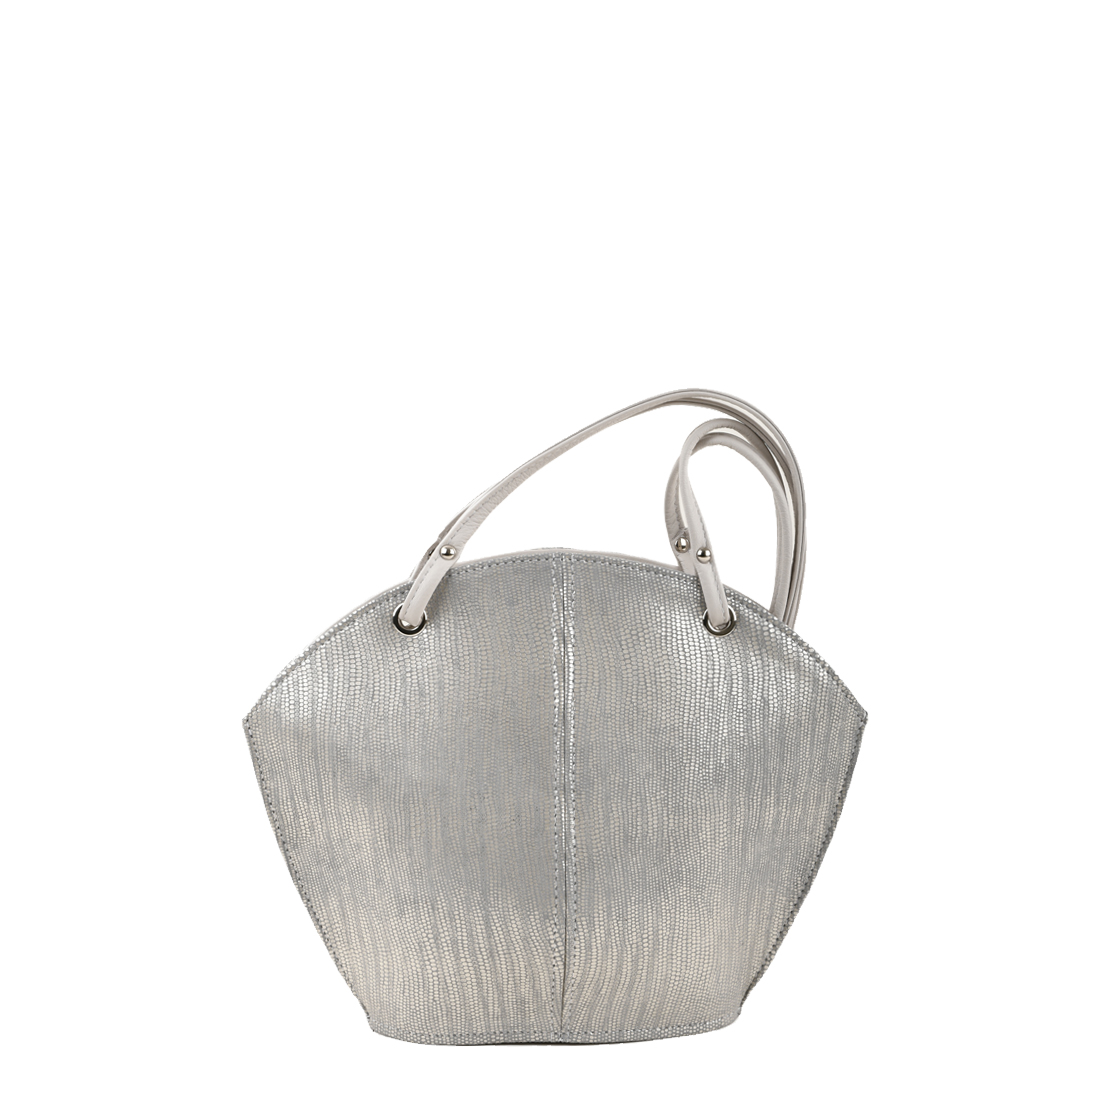 Ava Silver Eel Print Leather Shoulder Bag